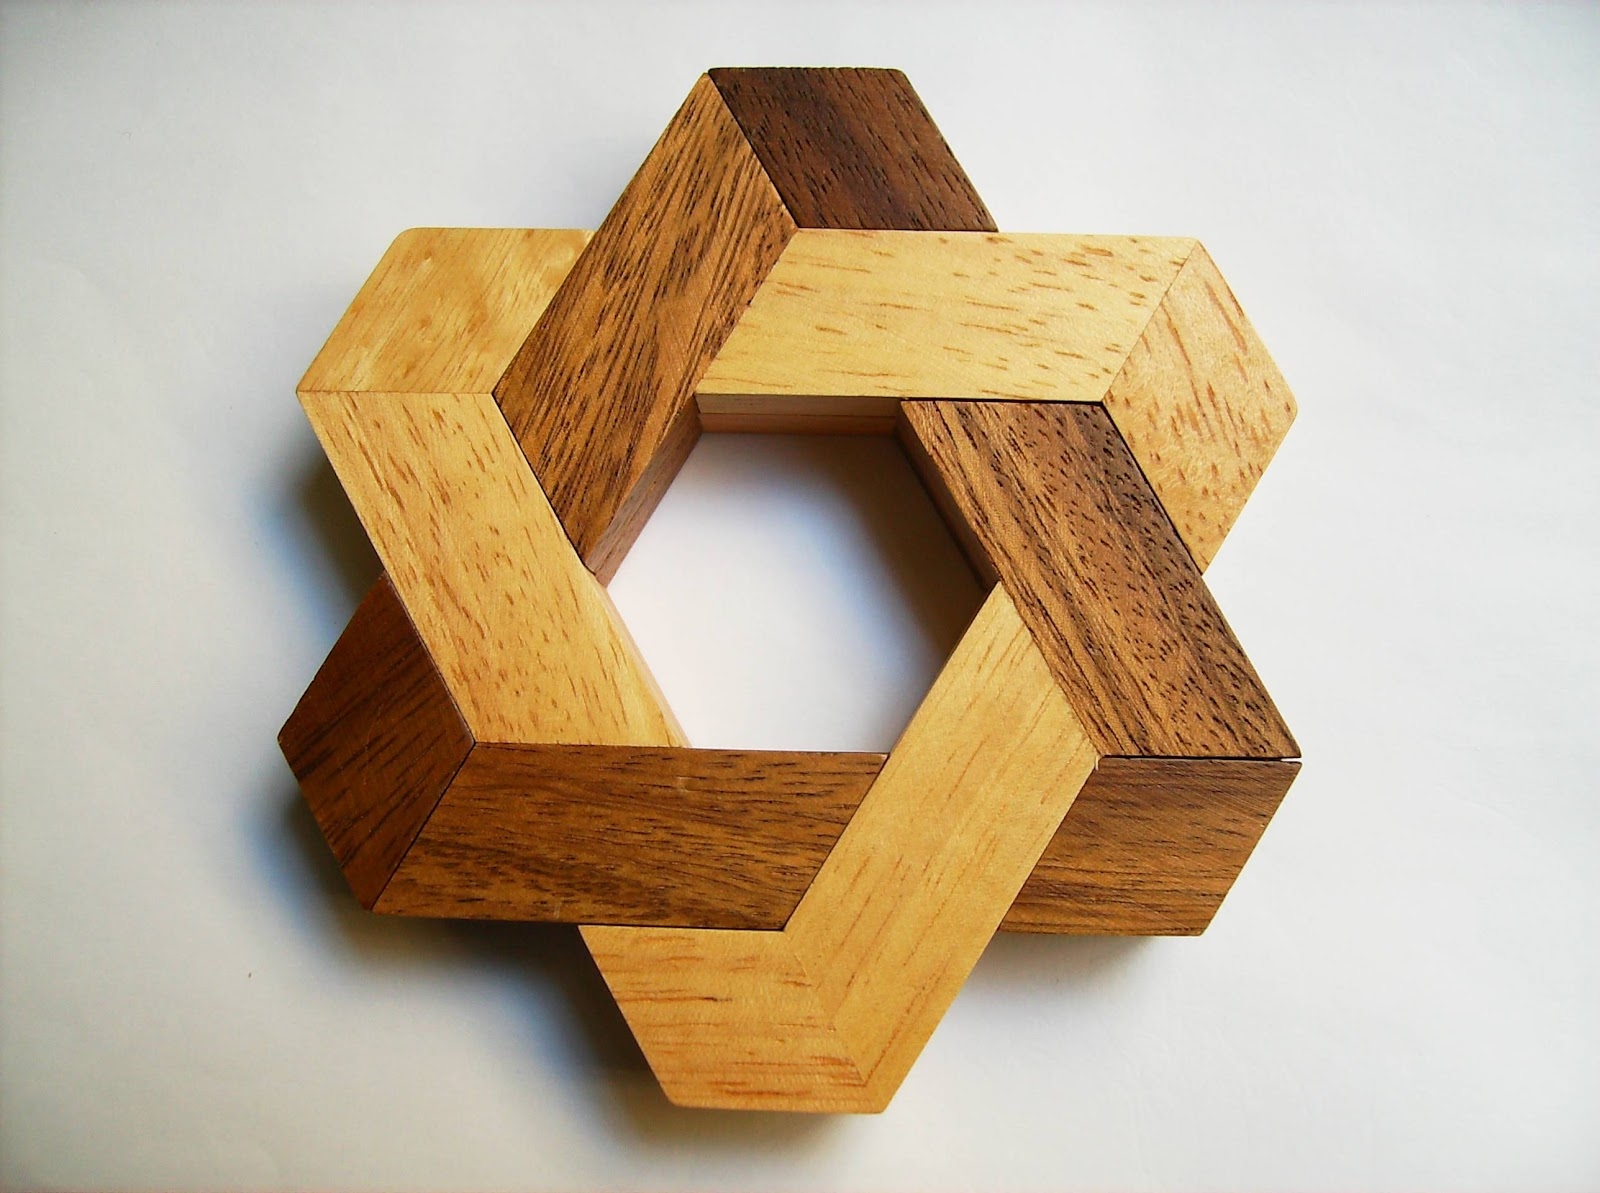 Wooden Puzzle Plans | Search Results | DIY Woodworking Projects